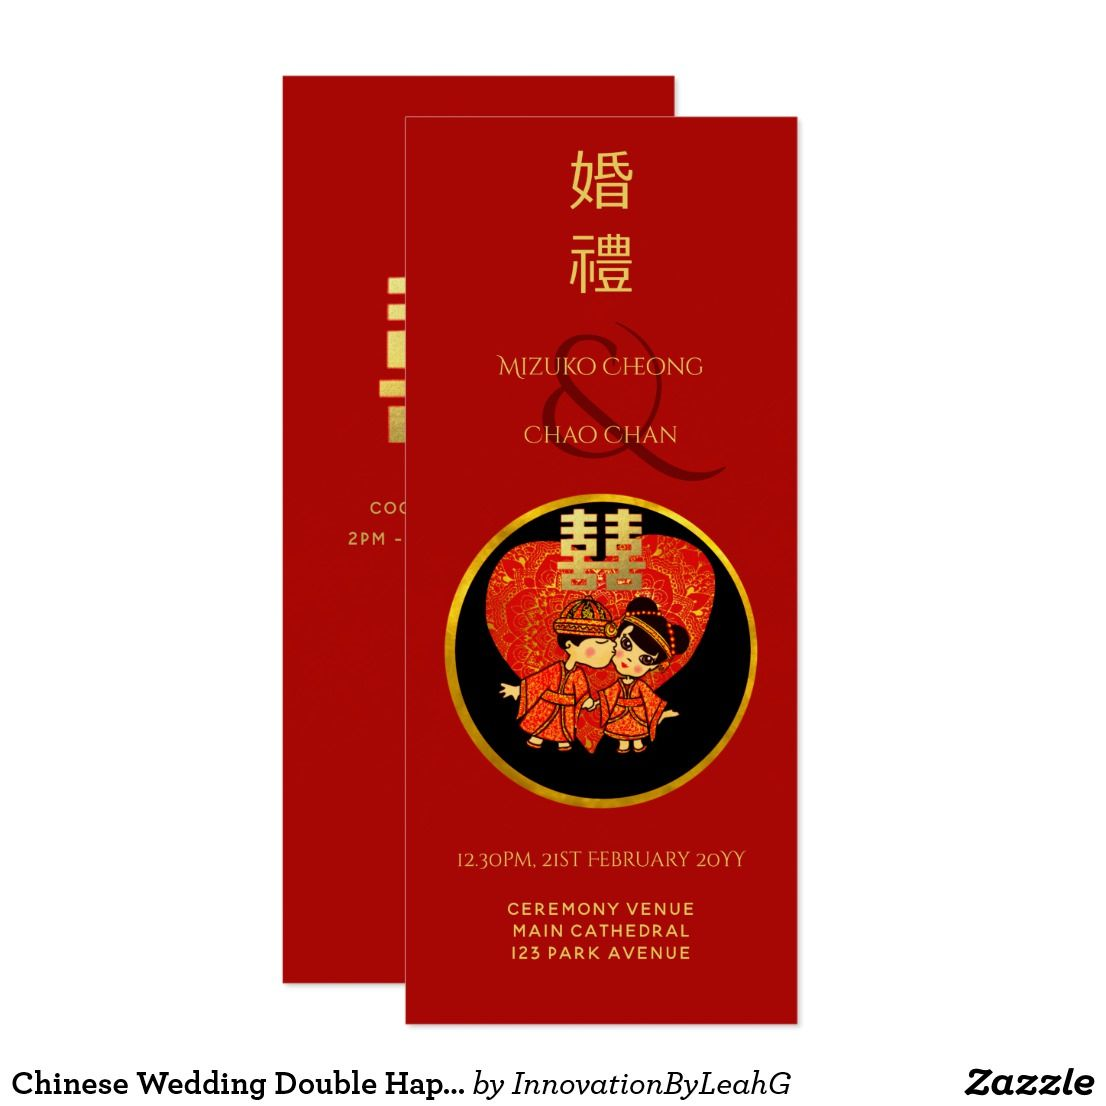 Chinese Wedding Double Happiness Cute Couple Invitation